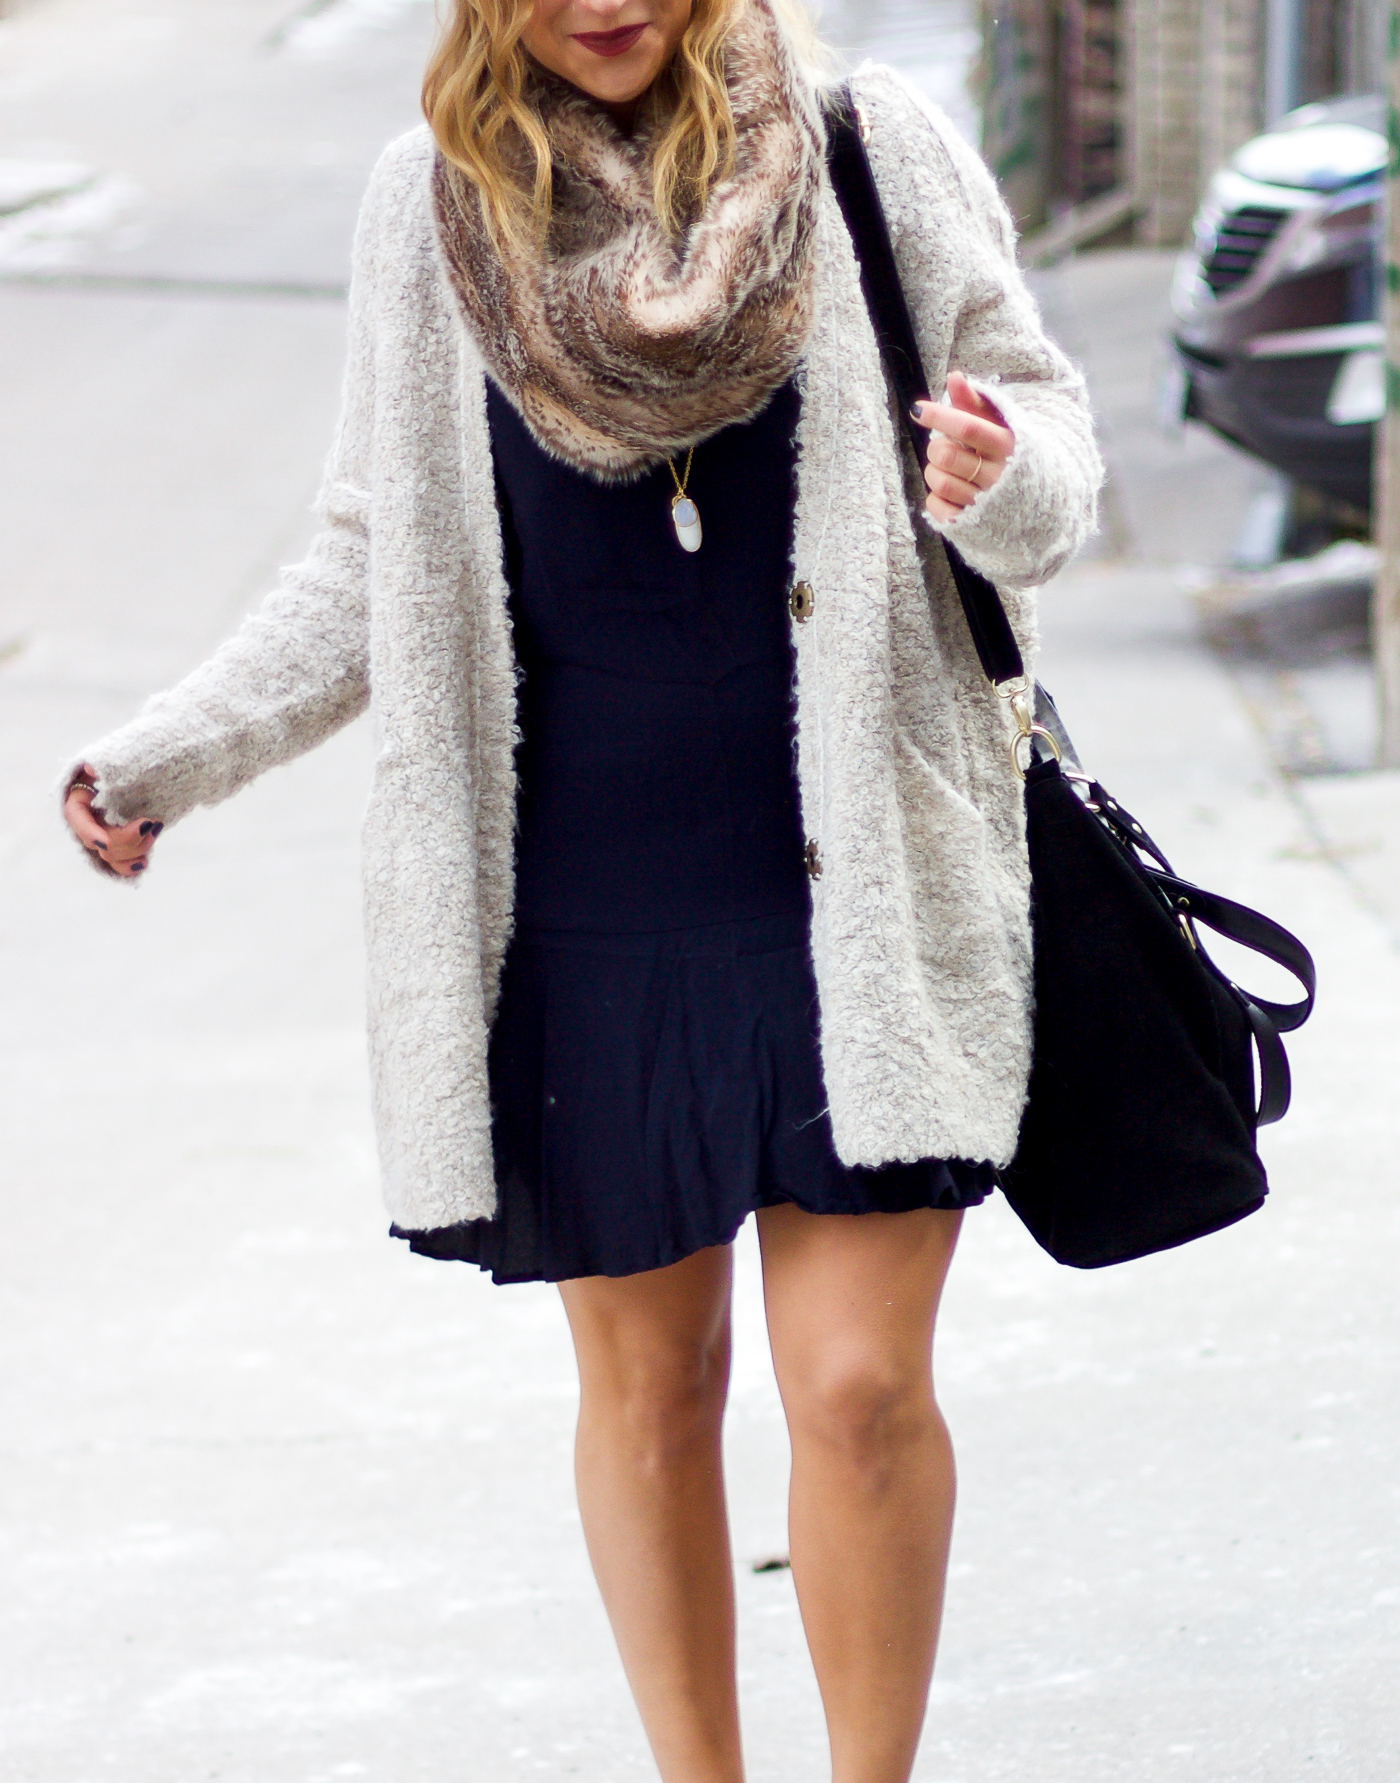 Canadian fashion blogger wearing a black dress from Gap and a Free People boucle cardigan